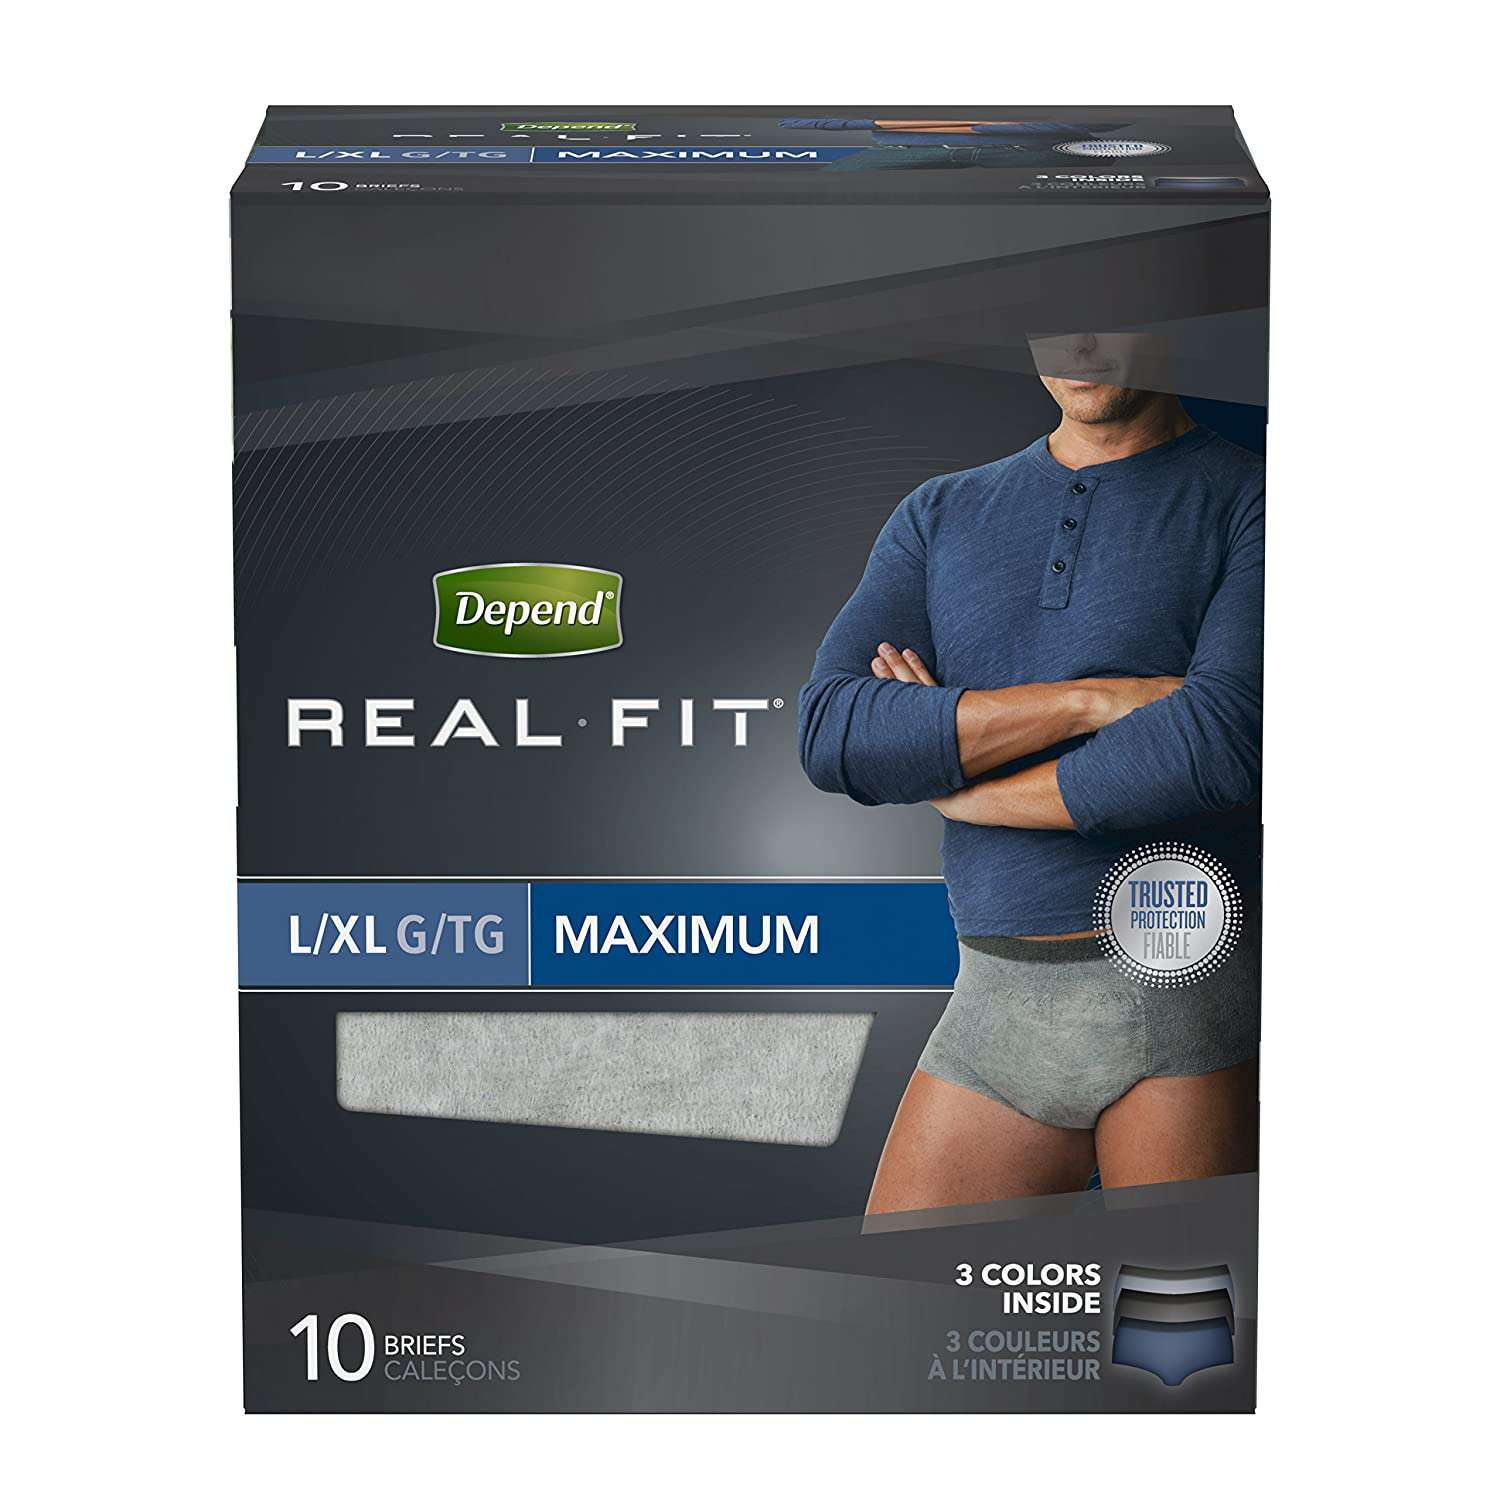 Depend Real Fit Incontinence Underwear for Men